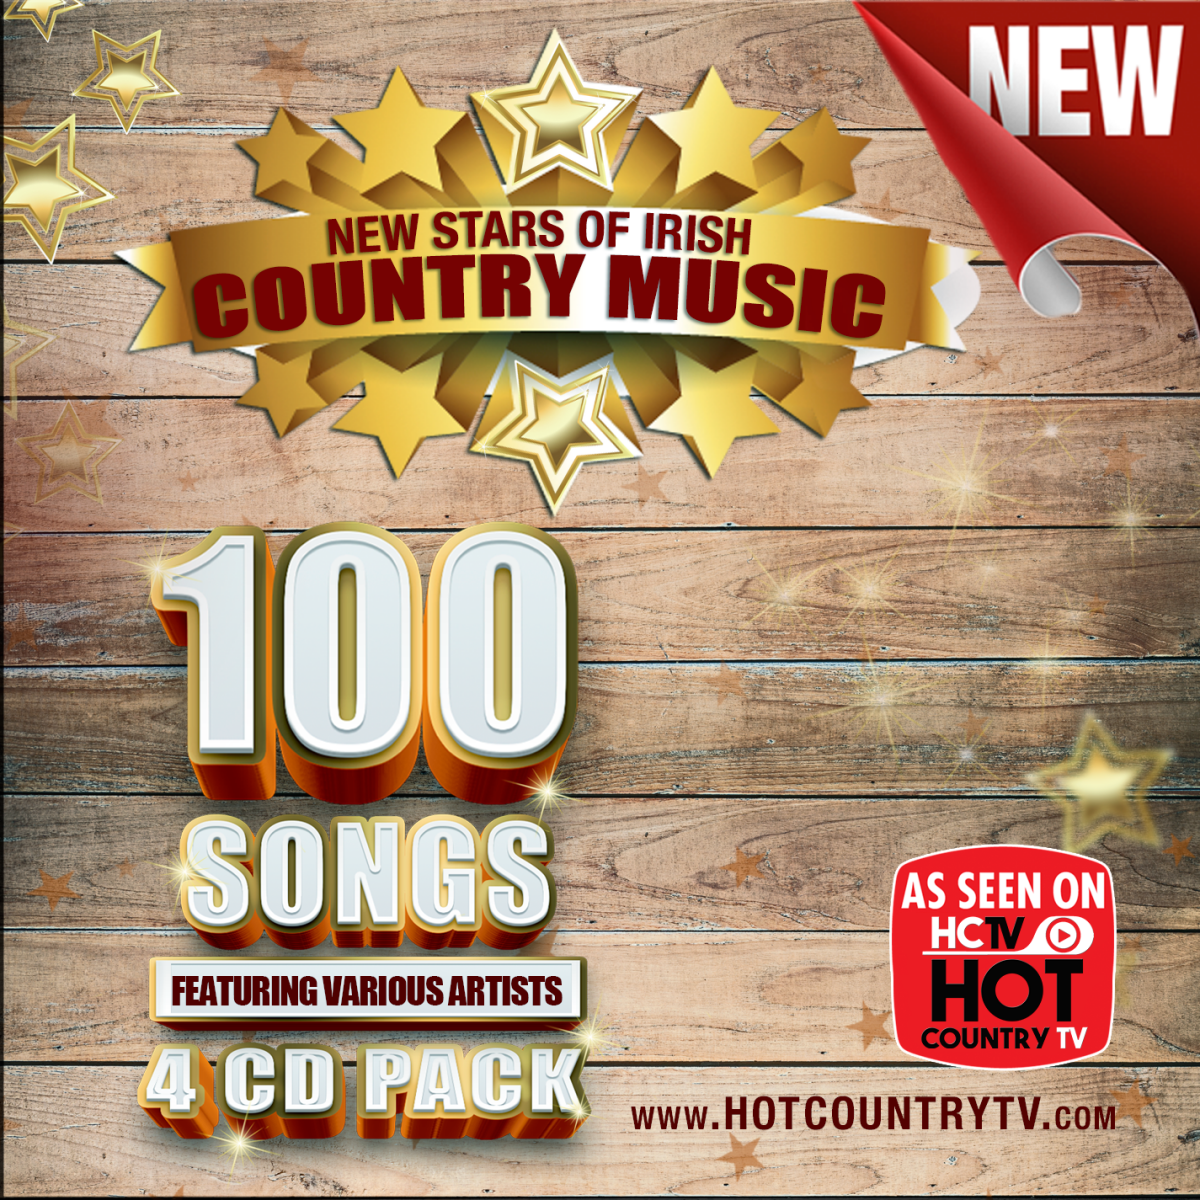 Mail Order & Events - Hot Country TV